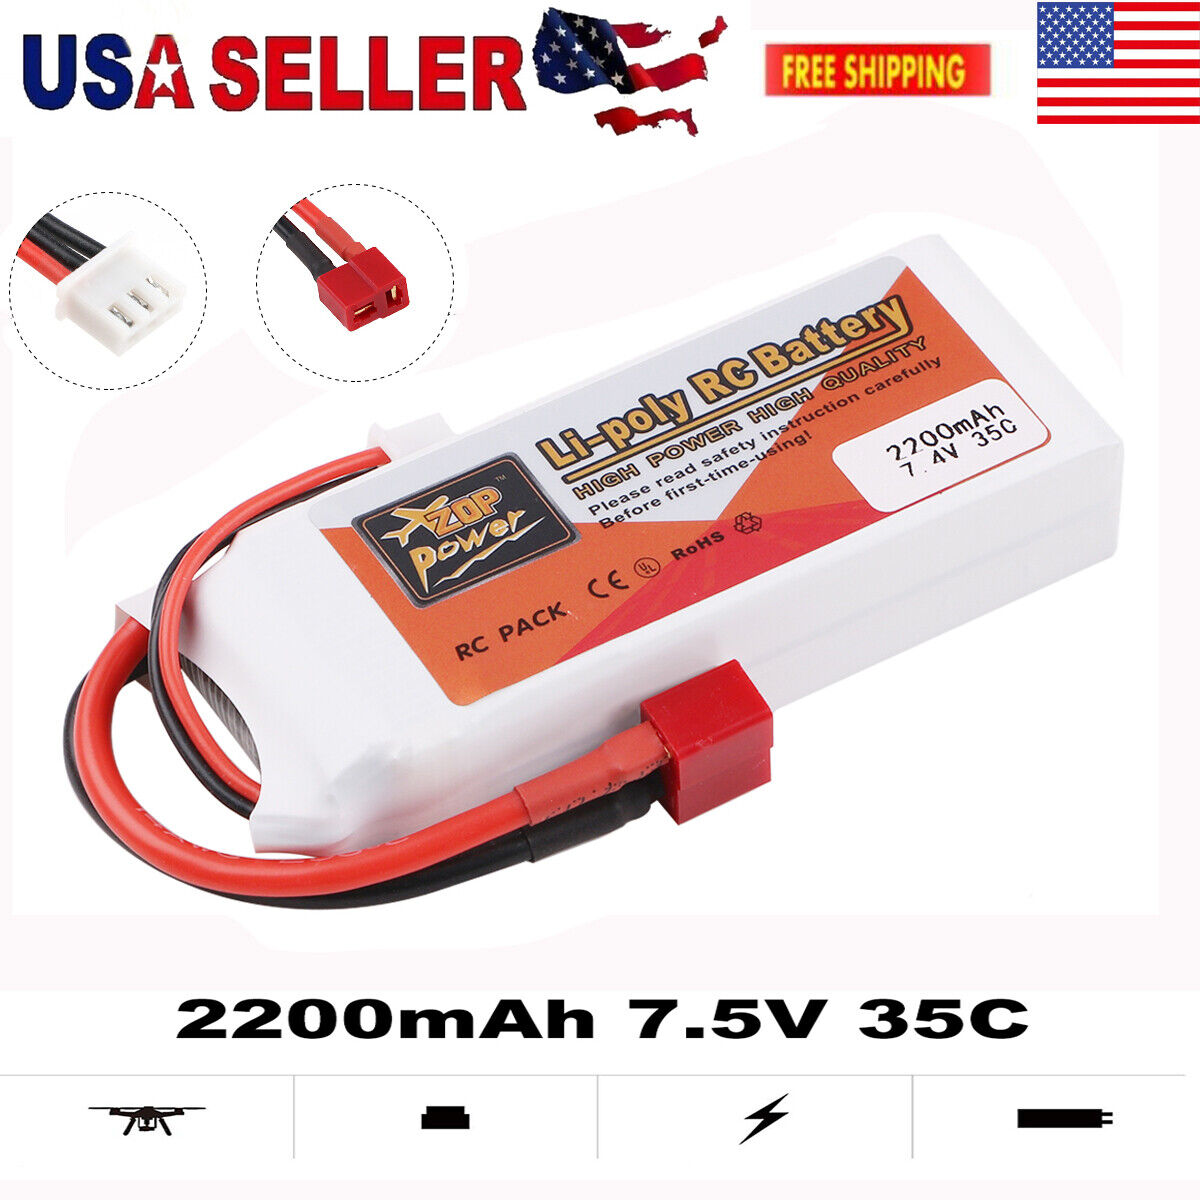 2S LiPo Battery 7.4V 2200mAh T Plug Deans 35C for RC Car Helicopter Airplane Toy